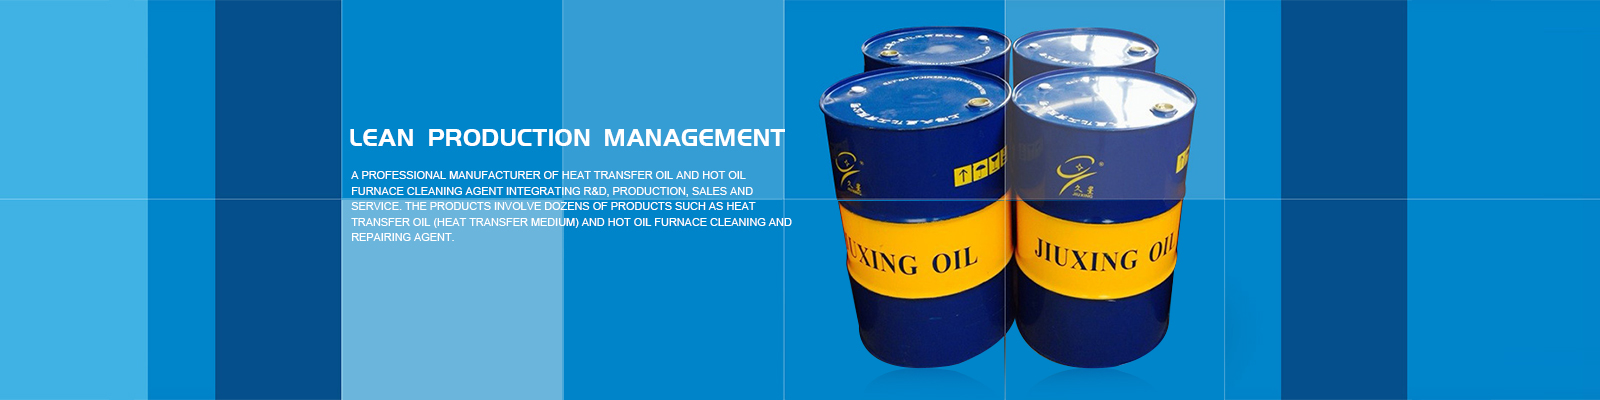 Shanghai Jiuxing Thermal Oil Co., Ltd.